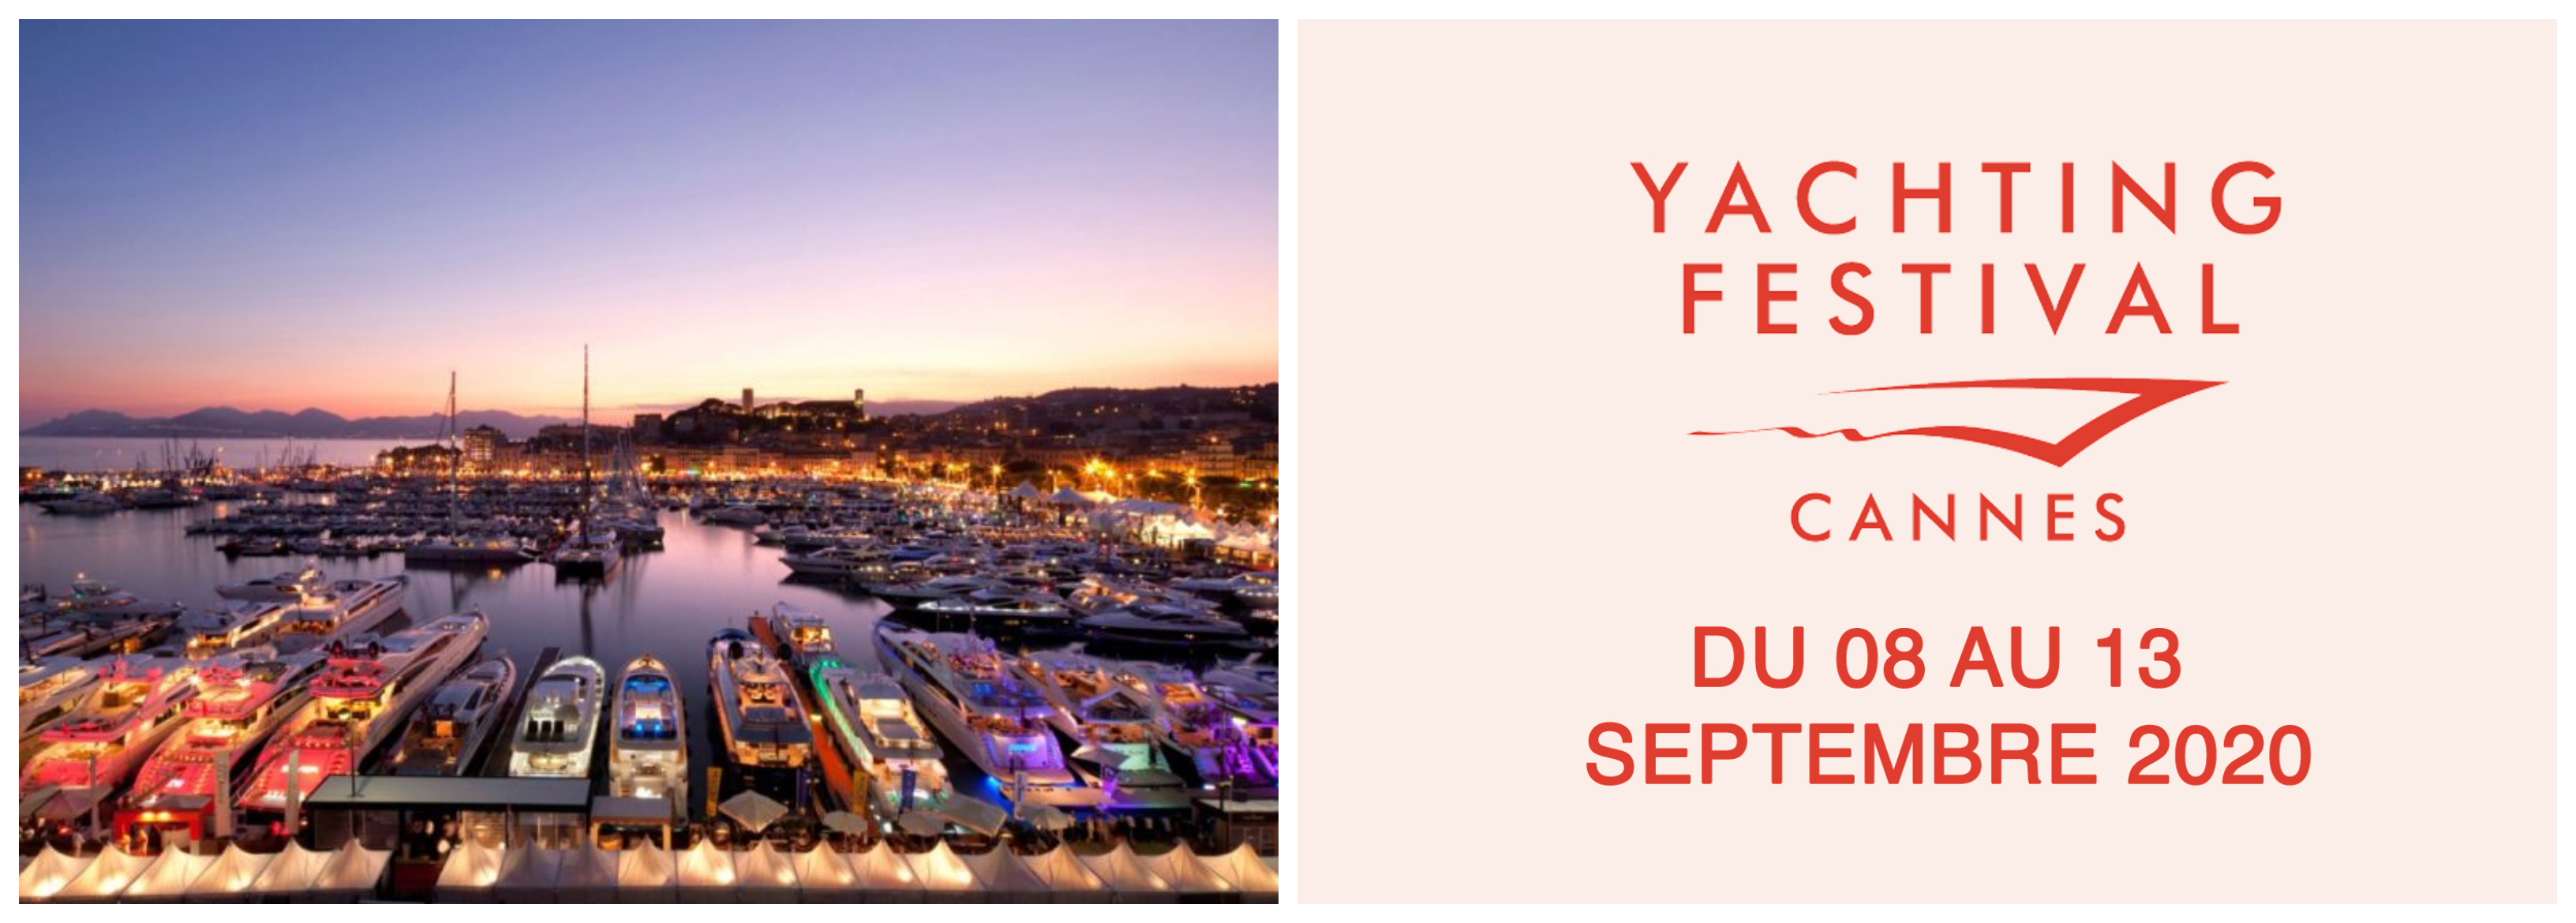 yachting-festival-cannes